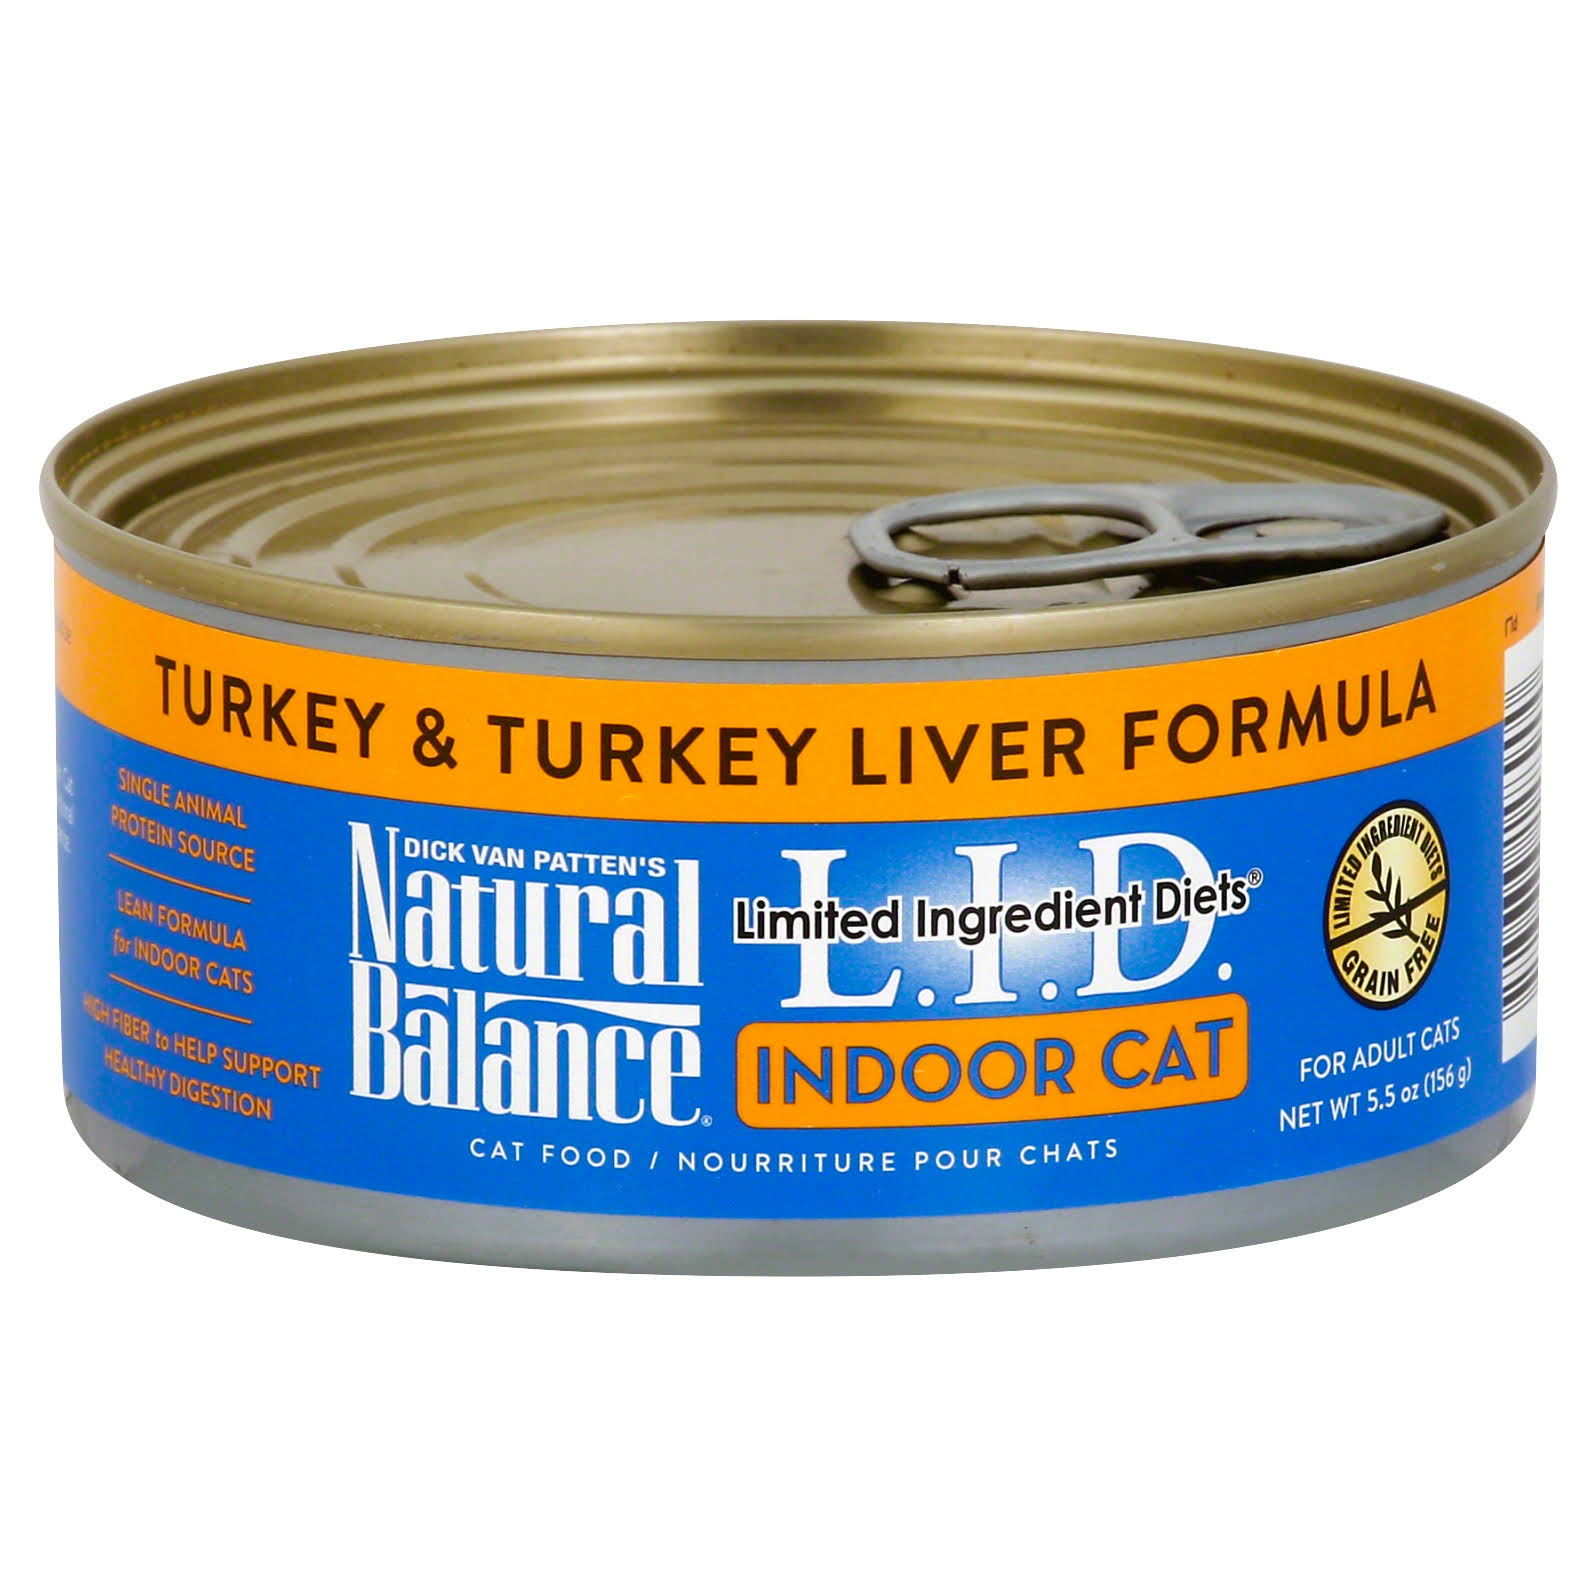 Natural Balance Indoor Cat Food - Turkey & Turkey Liver Formula, 156g